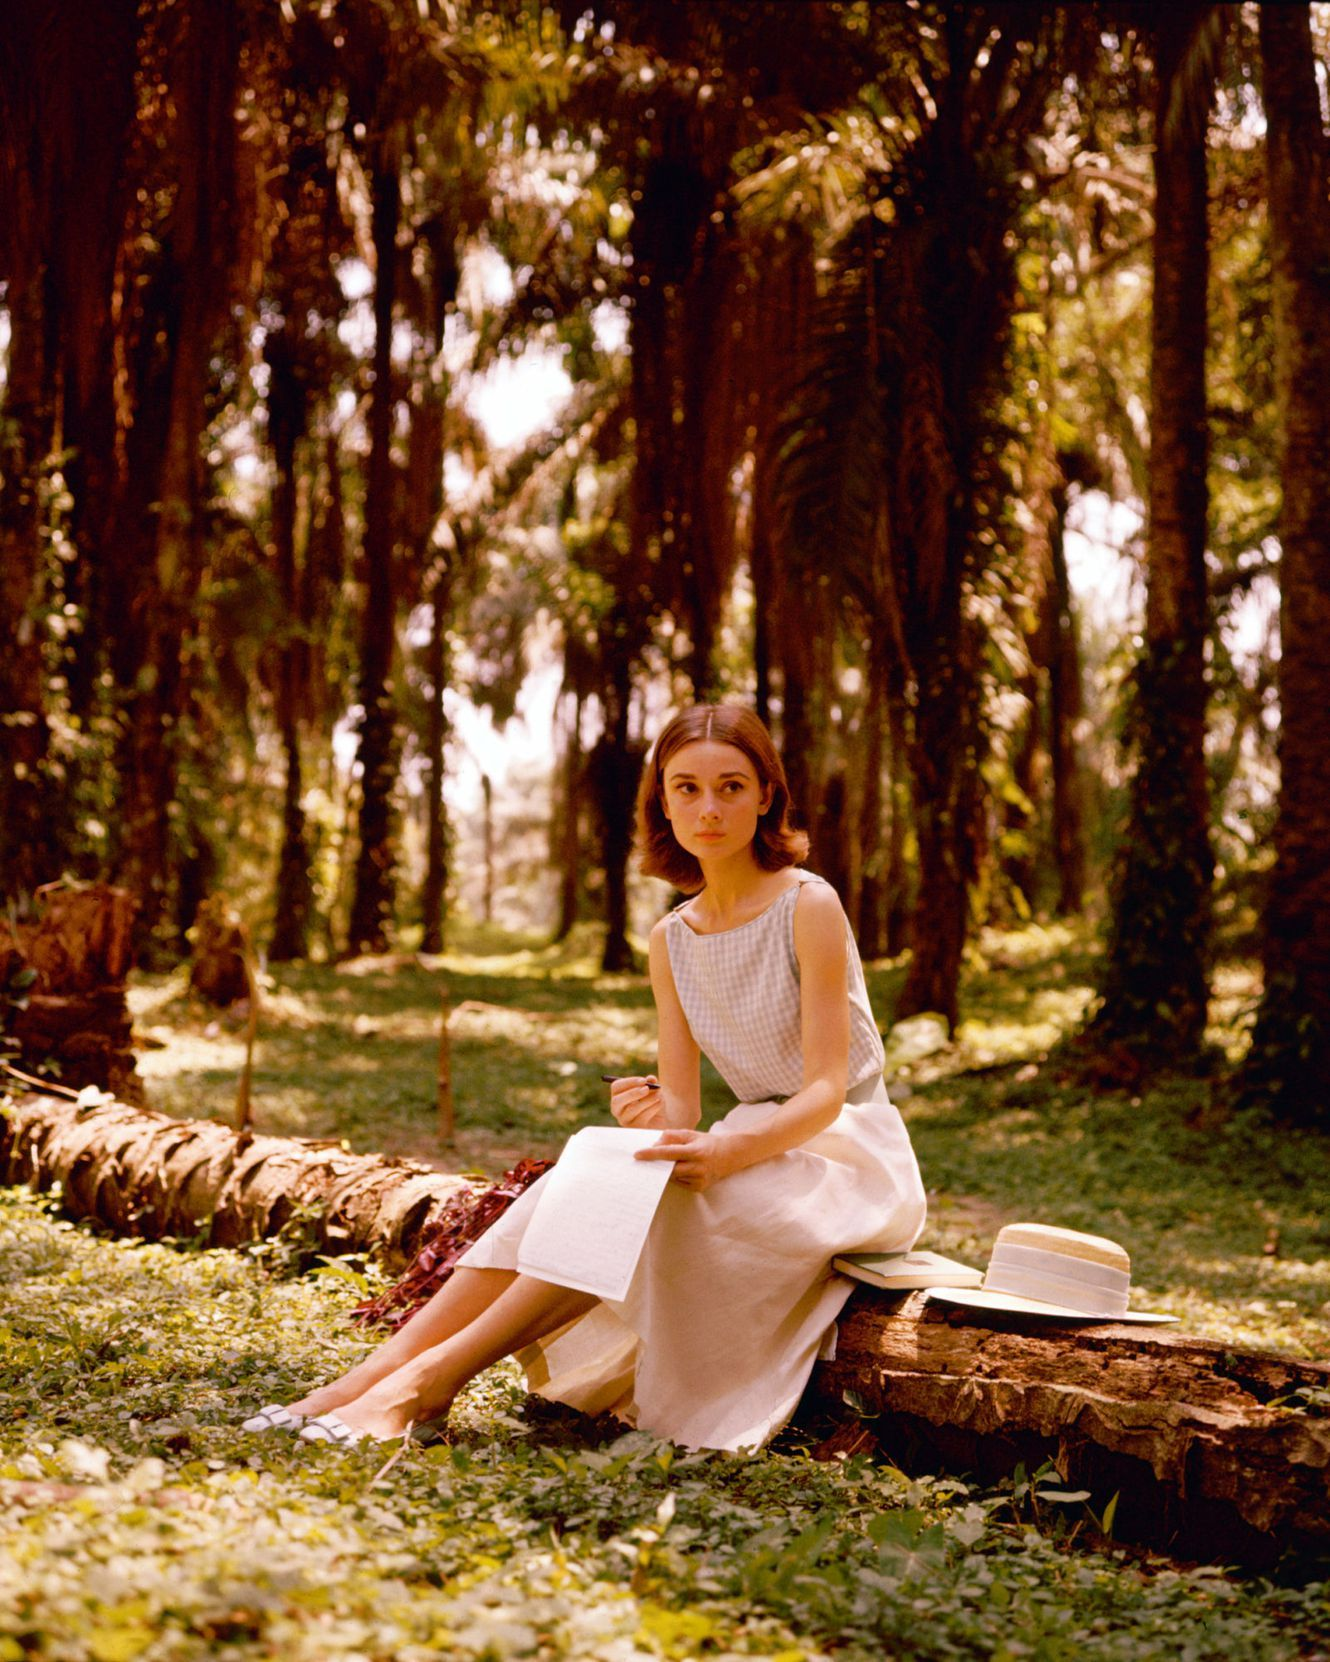 40 Photos of Audrey Hepburn Like You've Never Seen Her Before